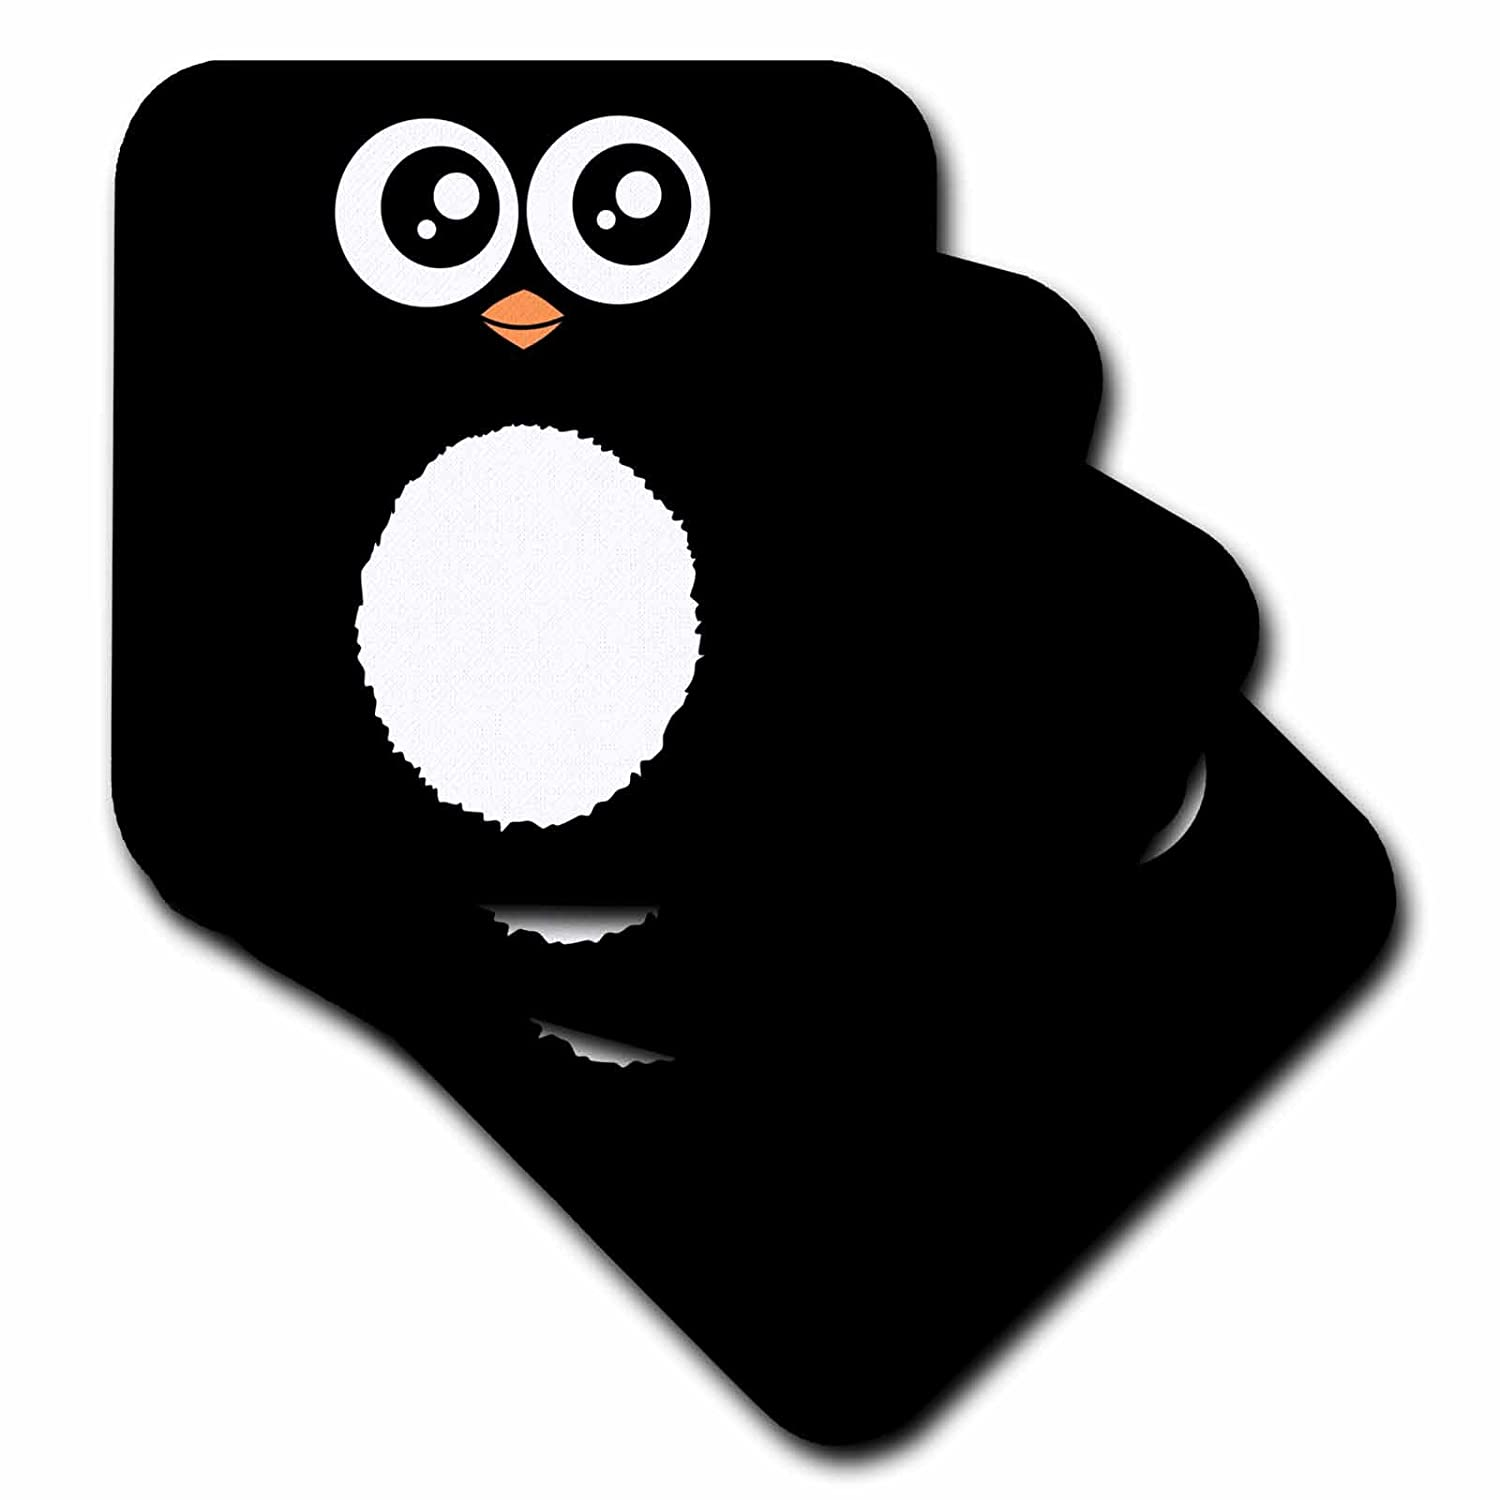 3dRose cst_113061_2 Cute Black Penguin Cartoon-Kawaii Sweet Animal Square-Adorable for Kids and Children-Penguins-Soft Coasters, Set of 8